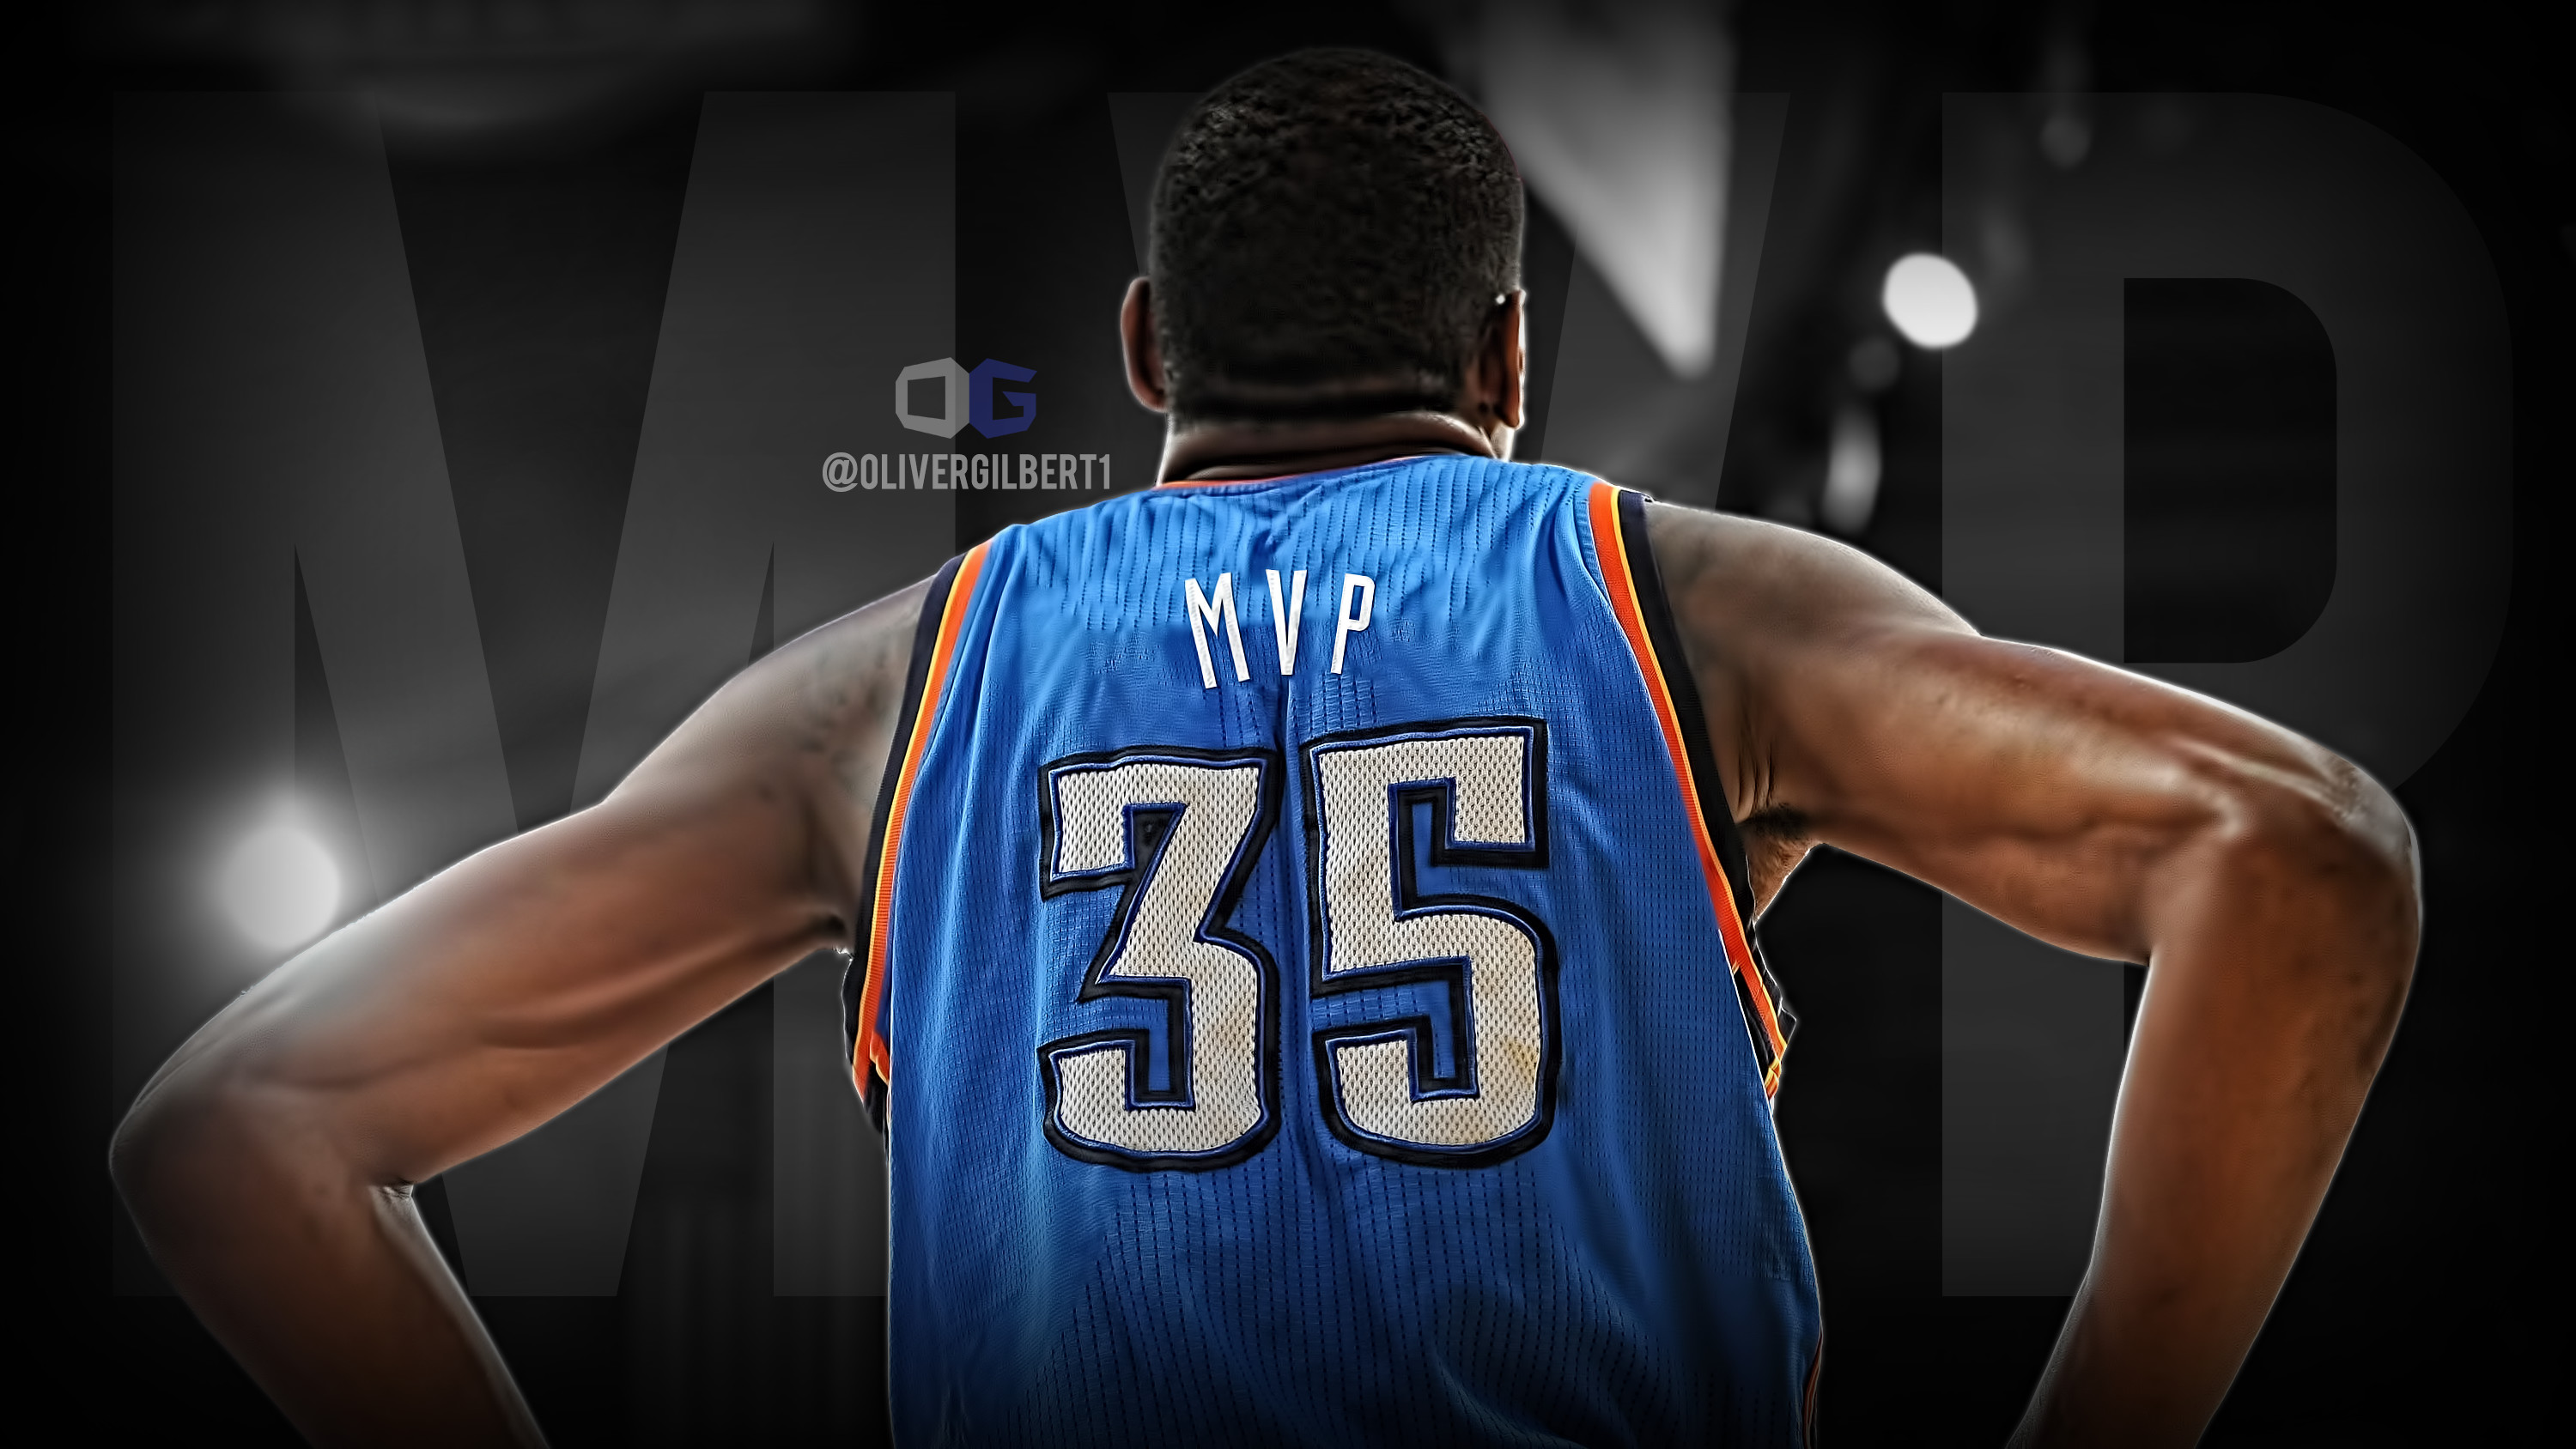 Res: 3000x1688, 0 Durant Wallpaper 2015 Hd Kevin Durant Wallpaper